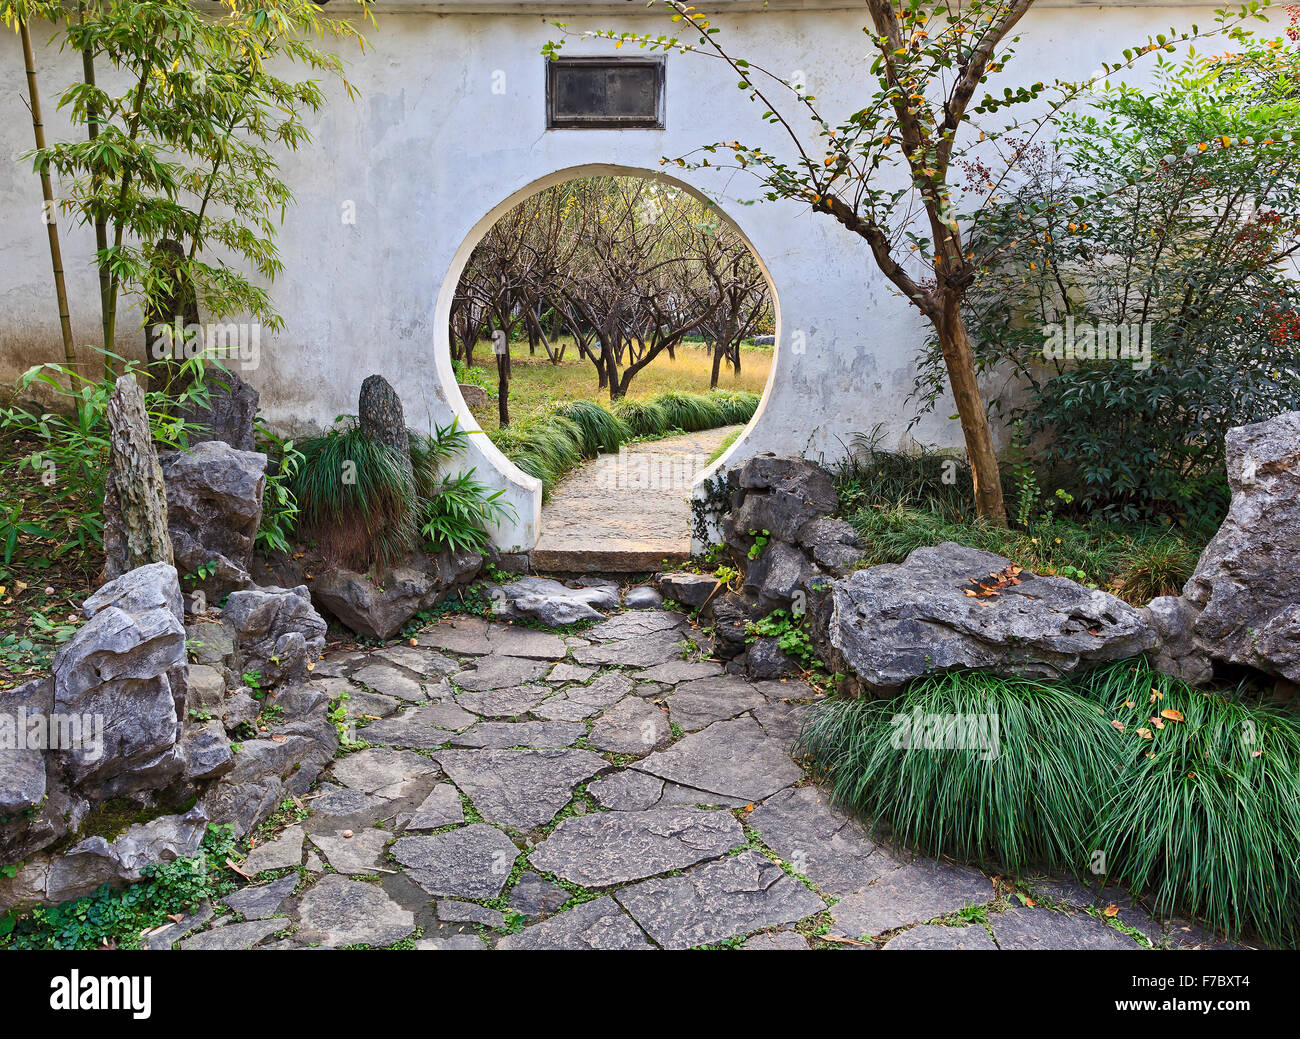 Superieur Chinese Formal Traditional Garden White Wall With Round Gate Hole From  Bamboo And Decorative Stones To